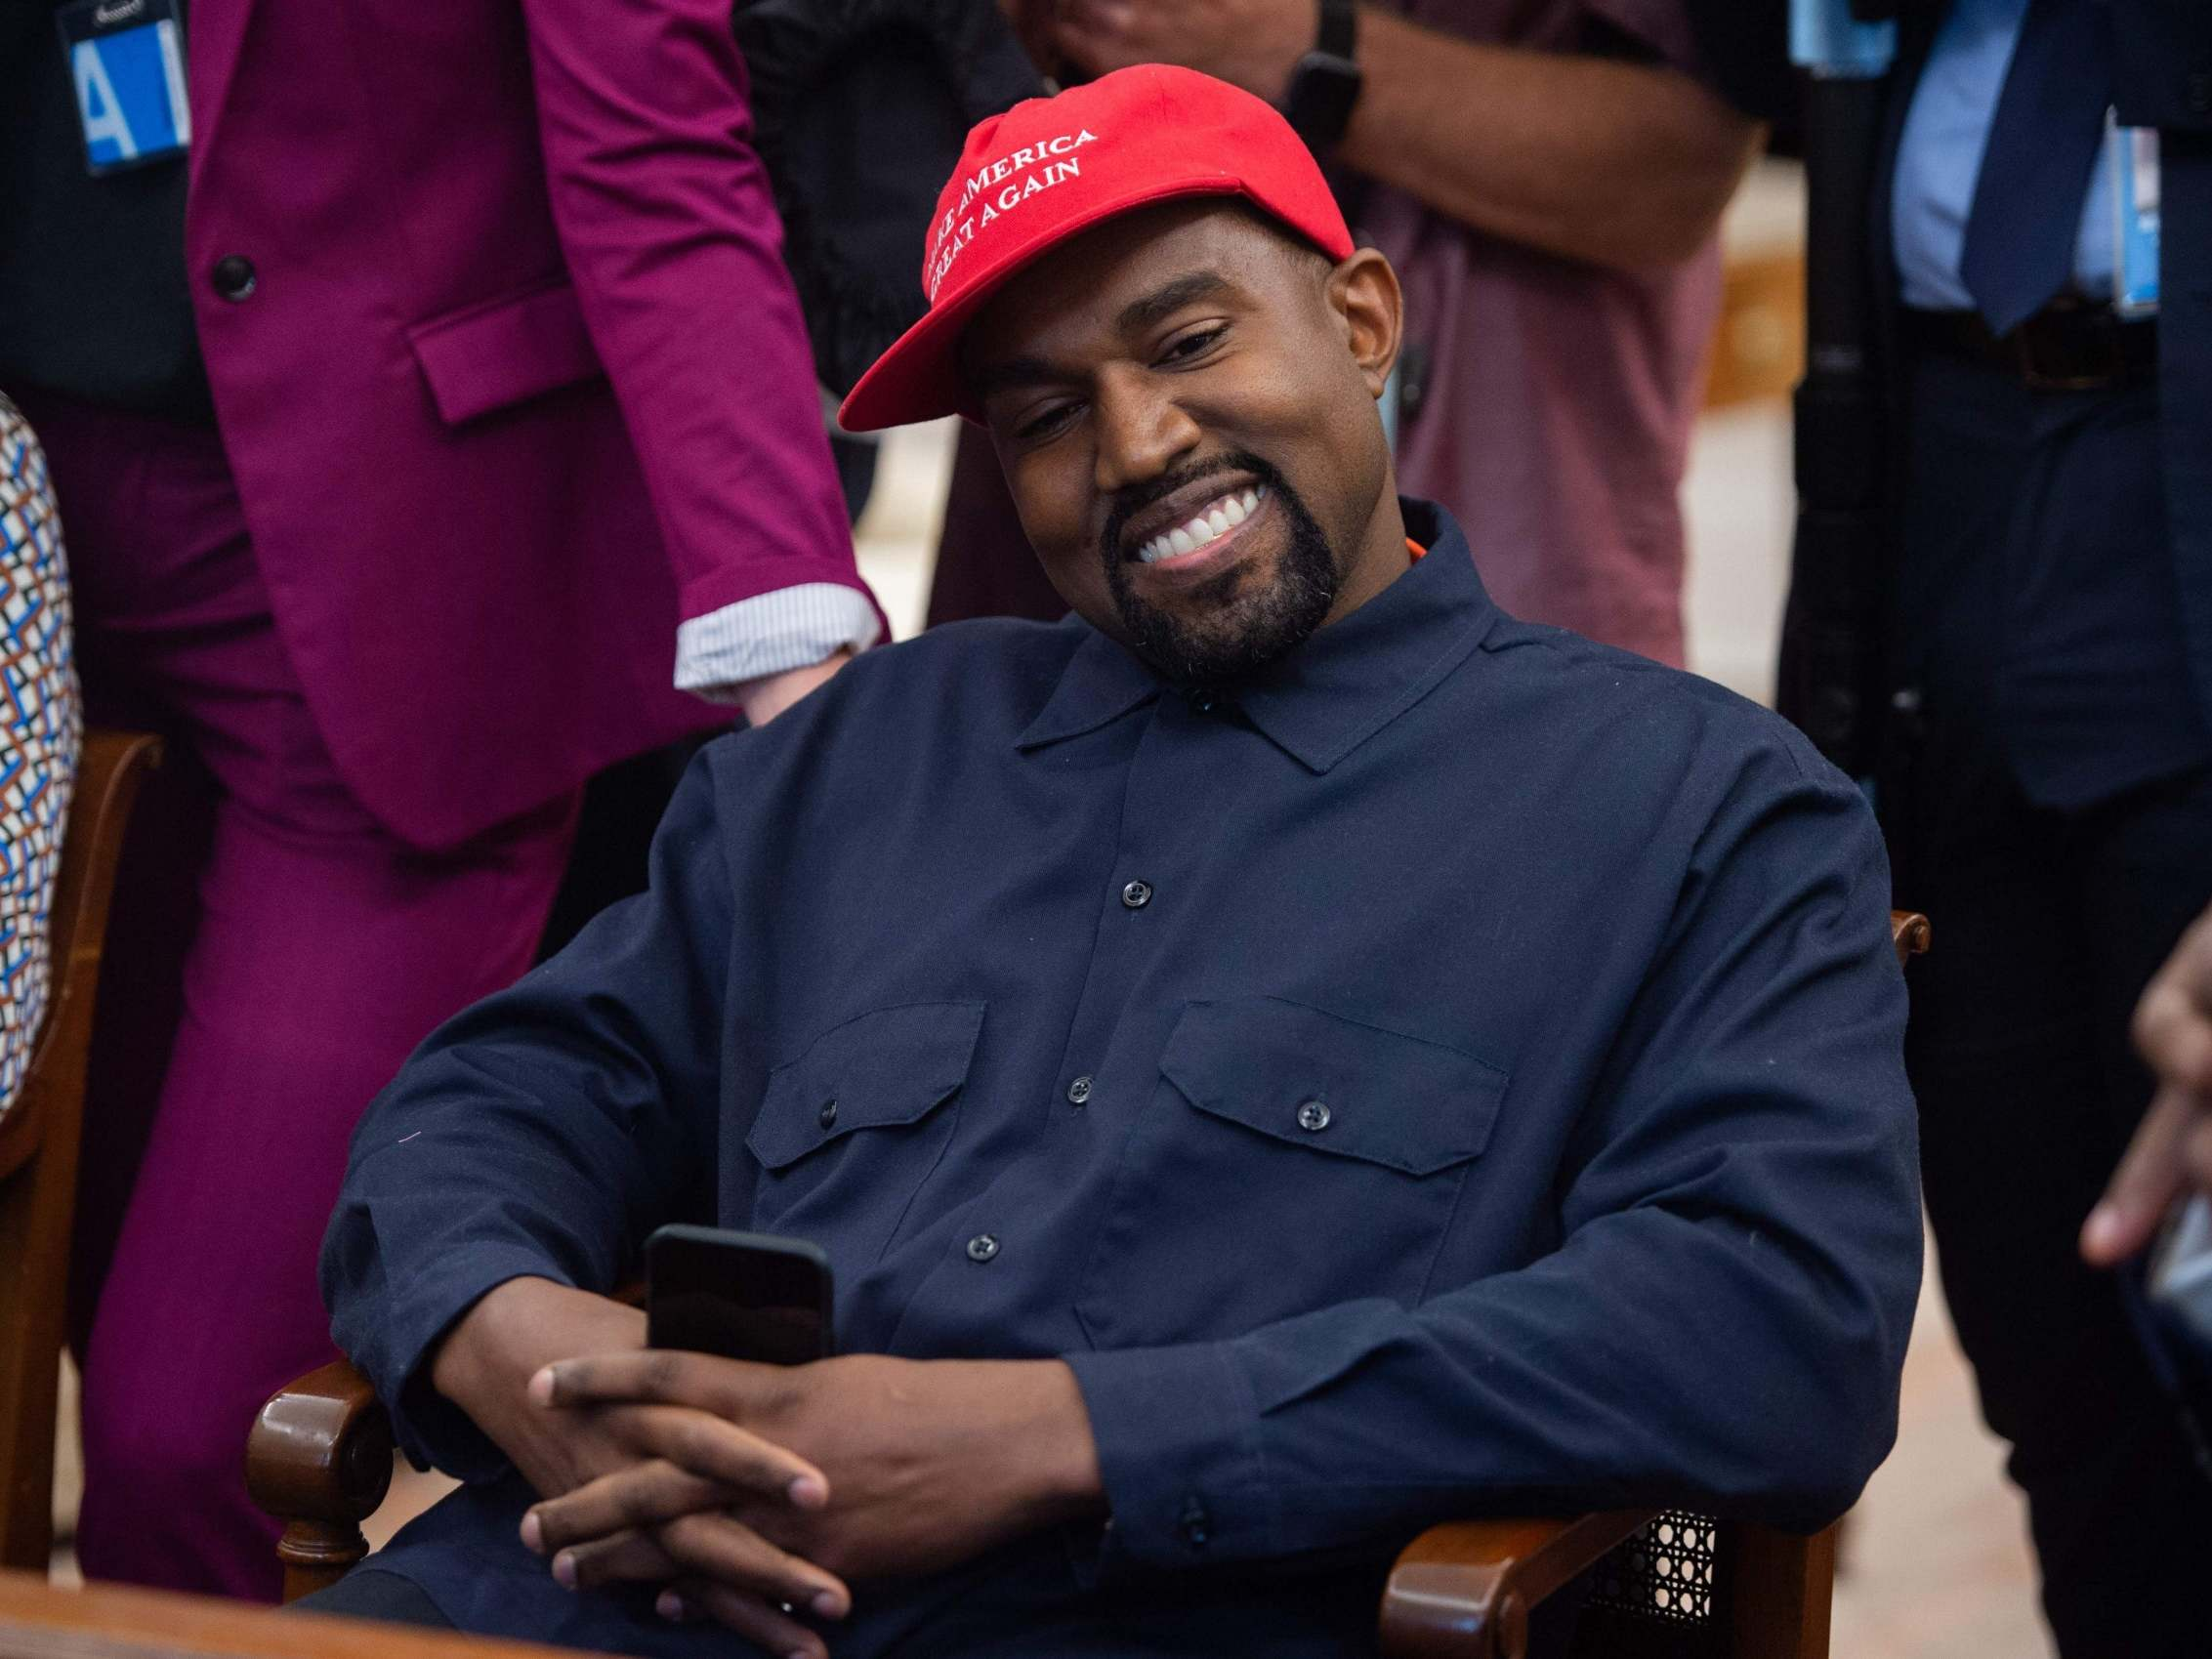 Trump administration hands emergency loans to Kanye West and Church of Scientology as small businesses go bust